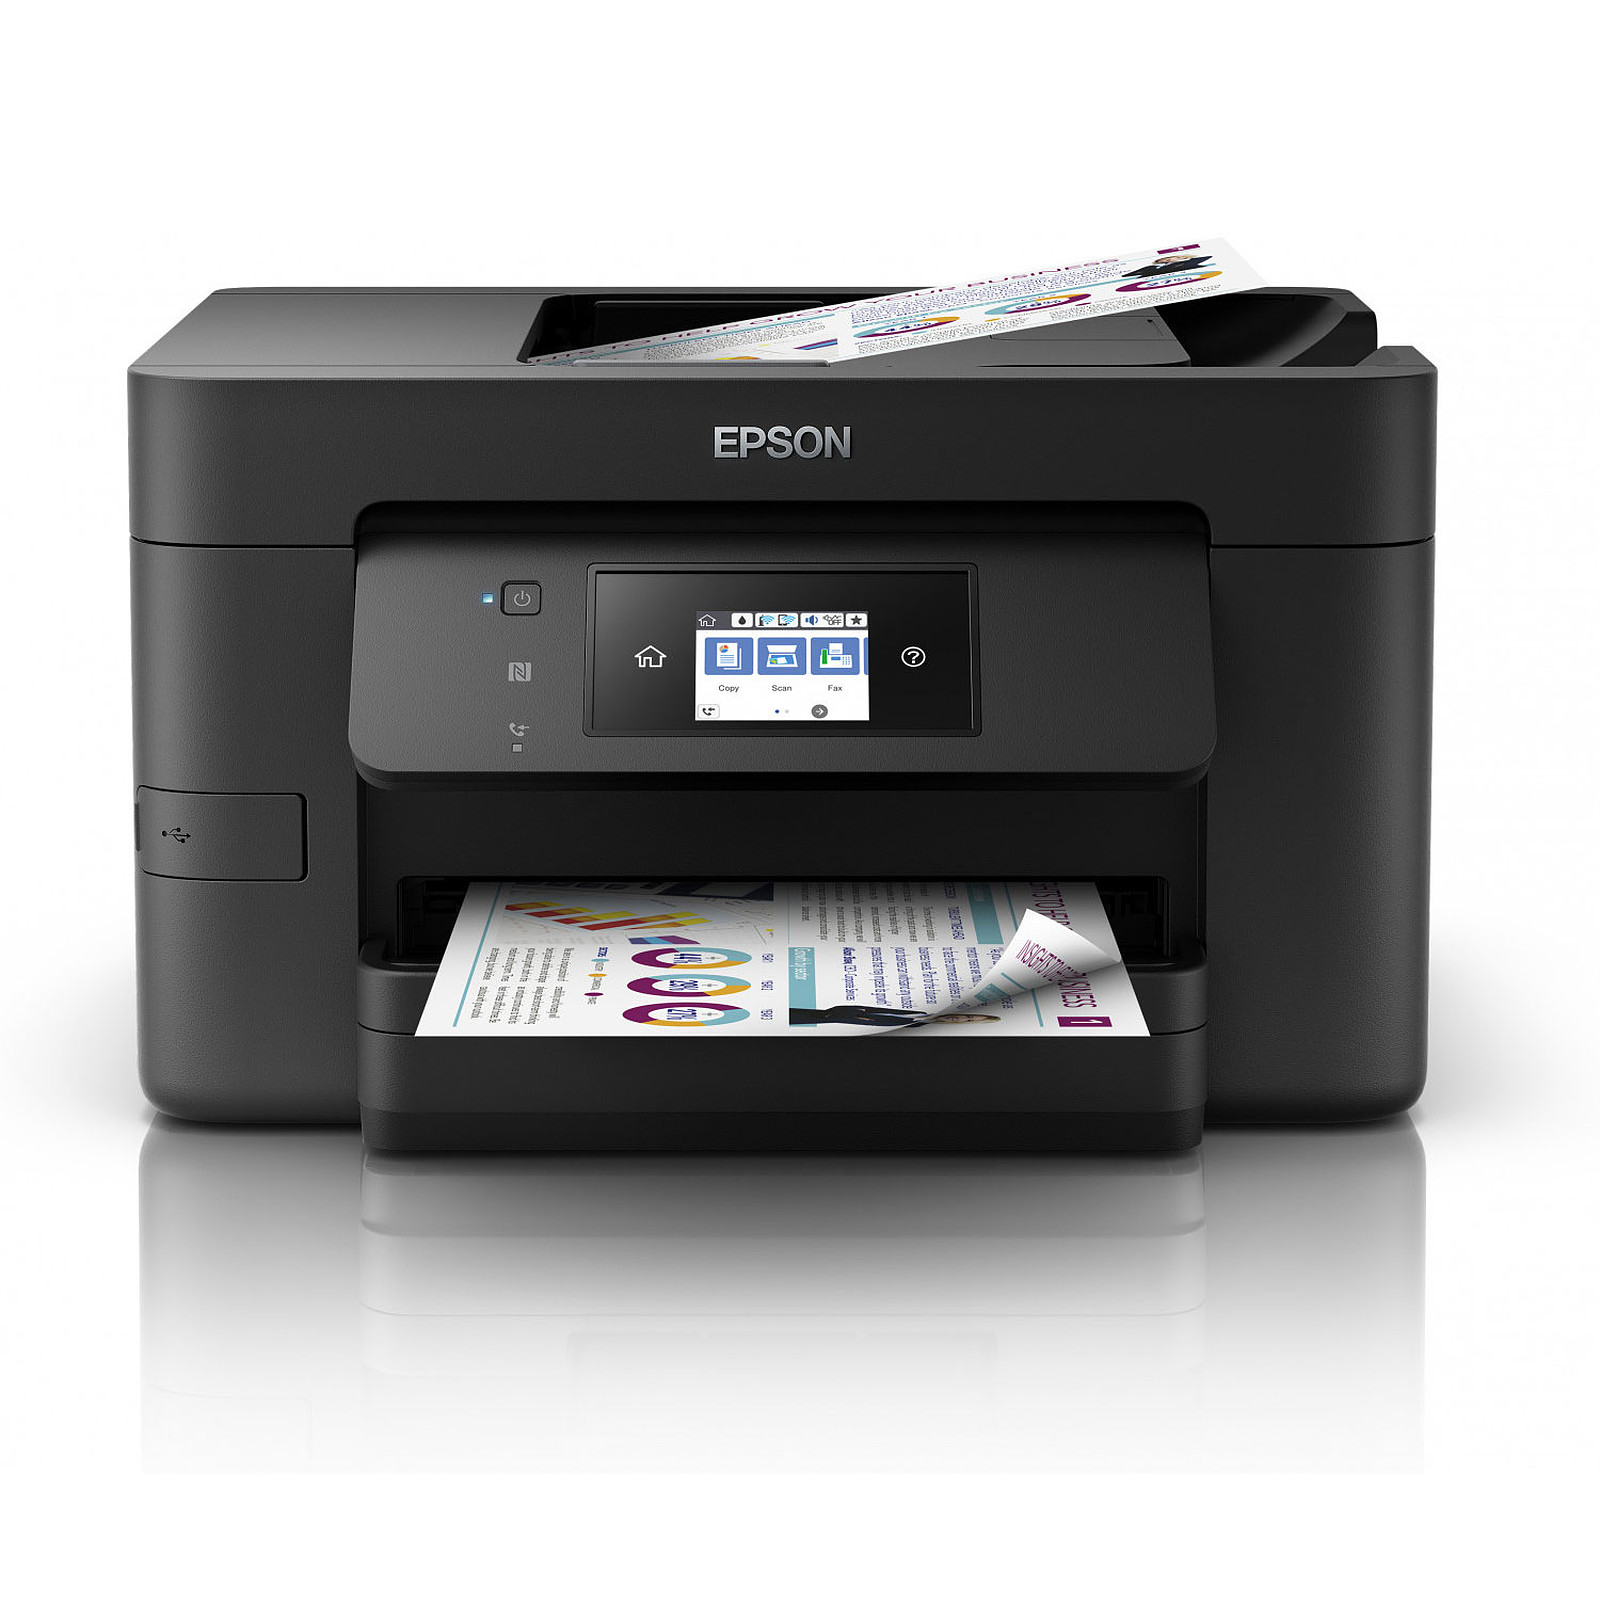 Epson WorkForce WF-4720DWF